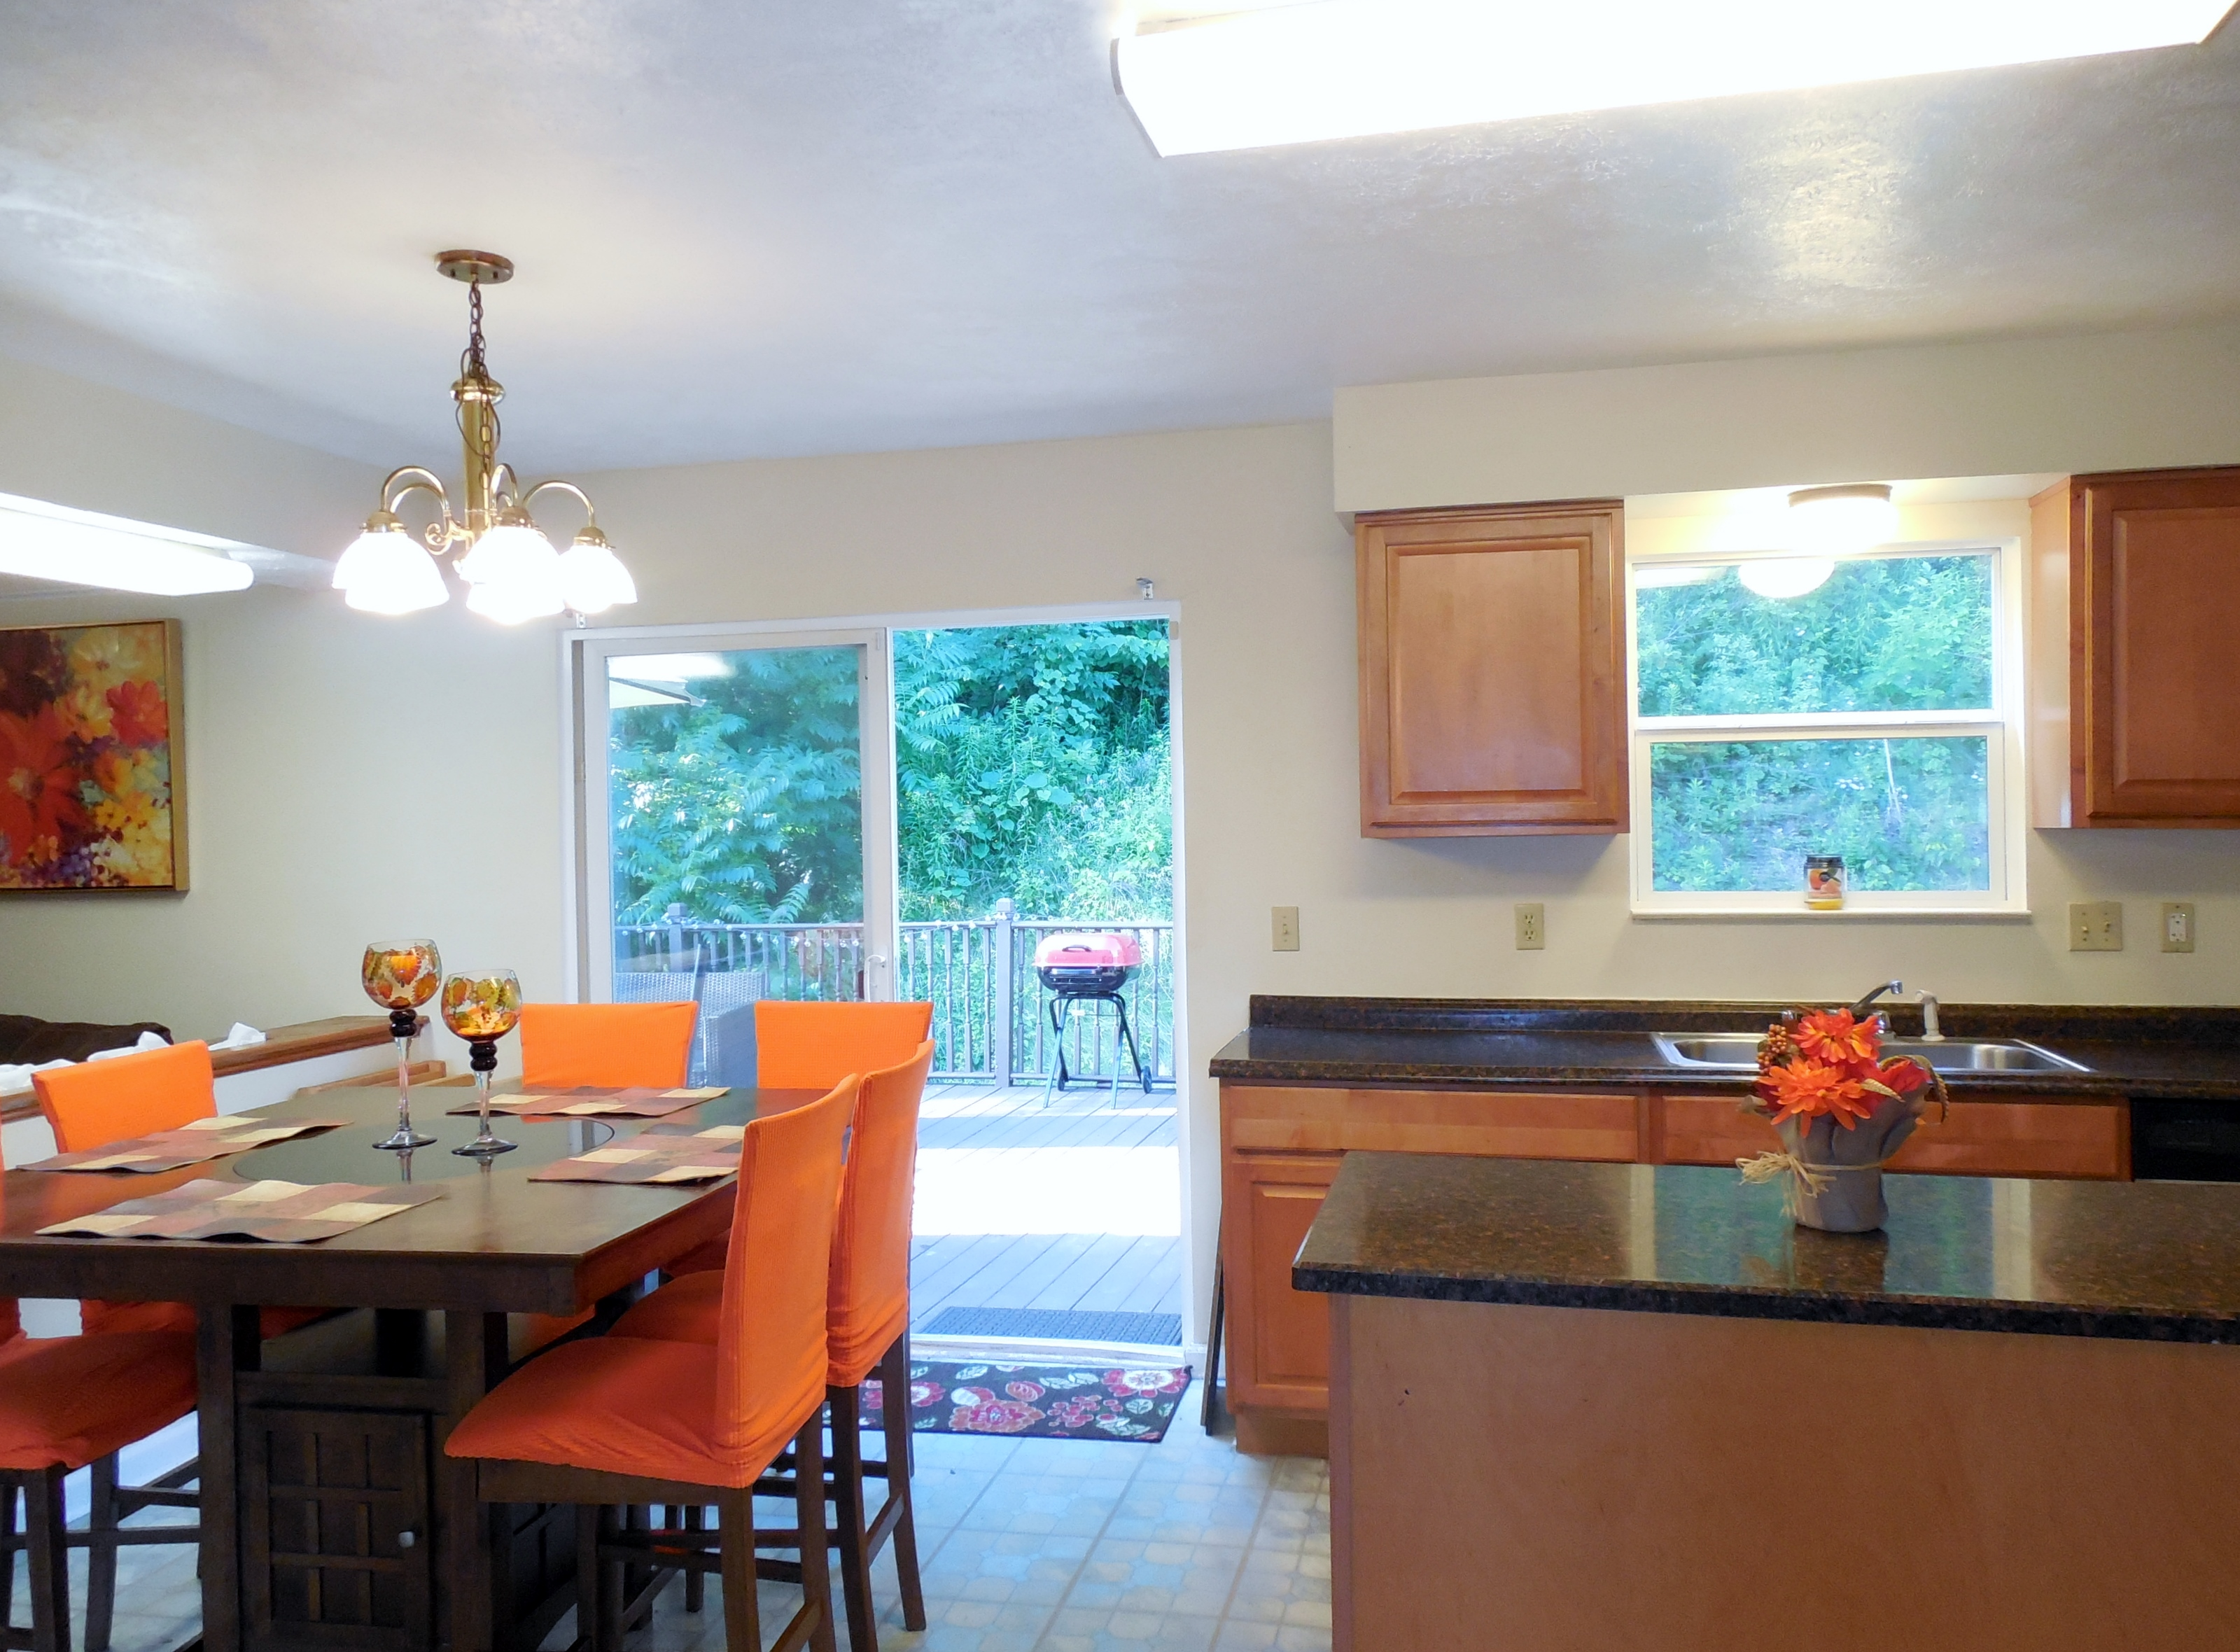 414 Millers Ln, Pittsburgh, PA 15239 | RealEstate.com